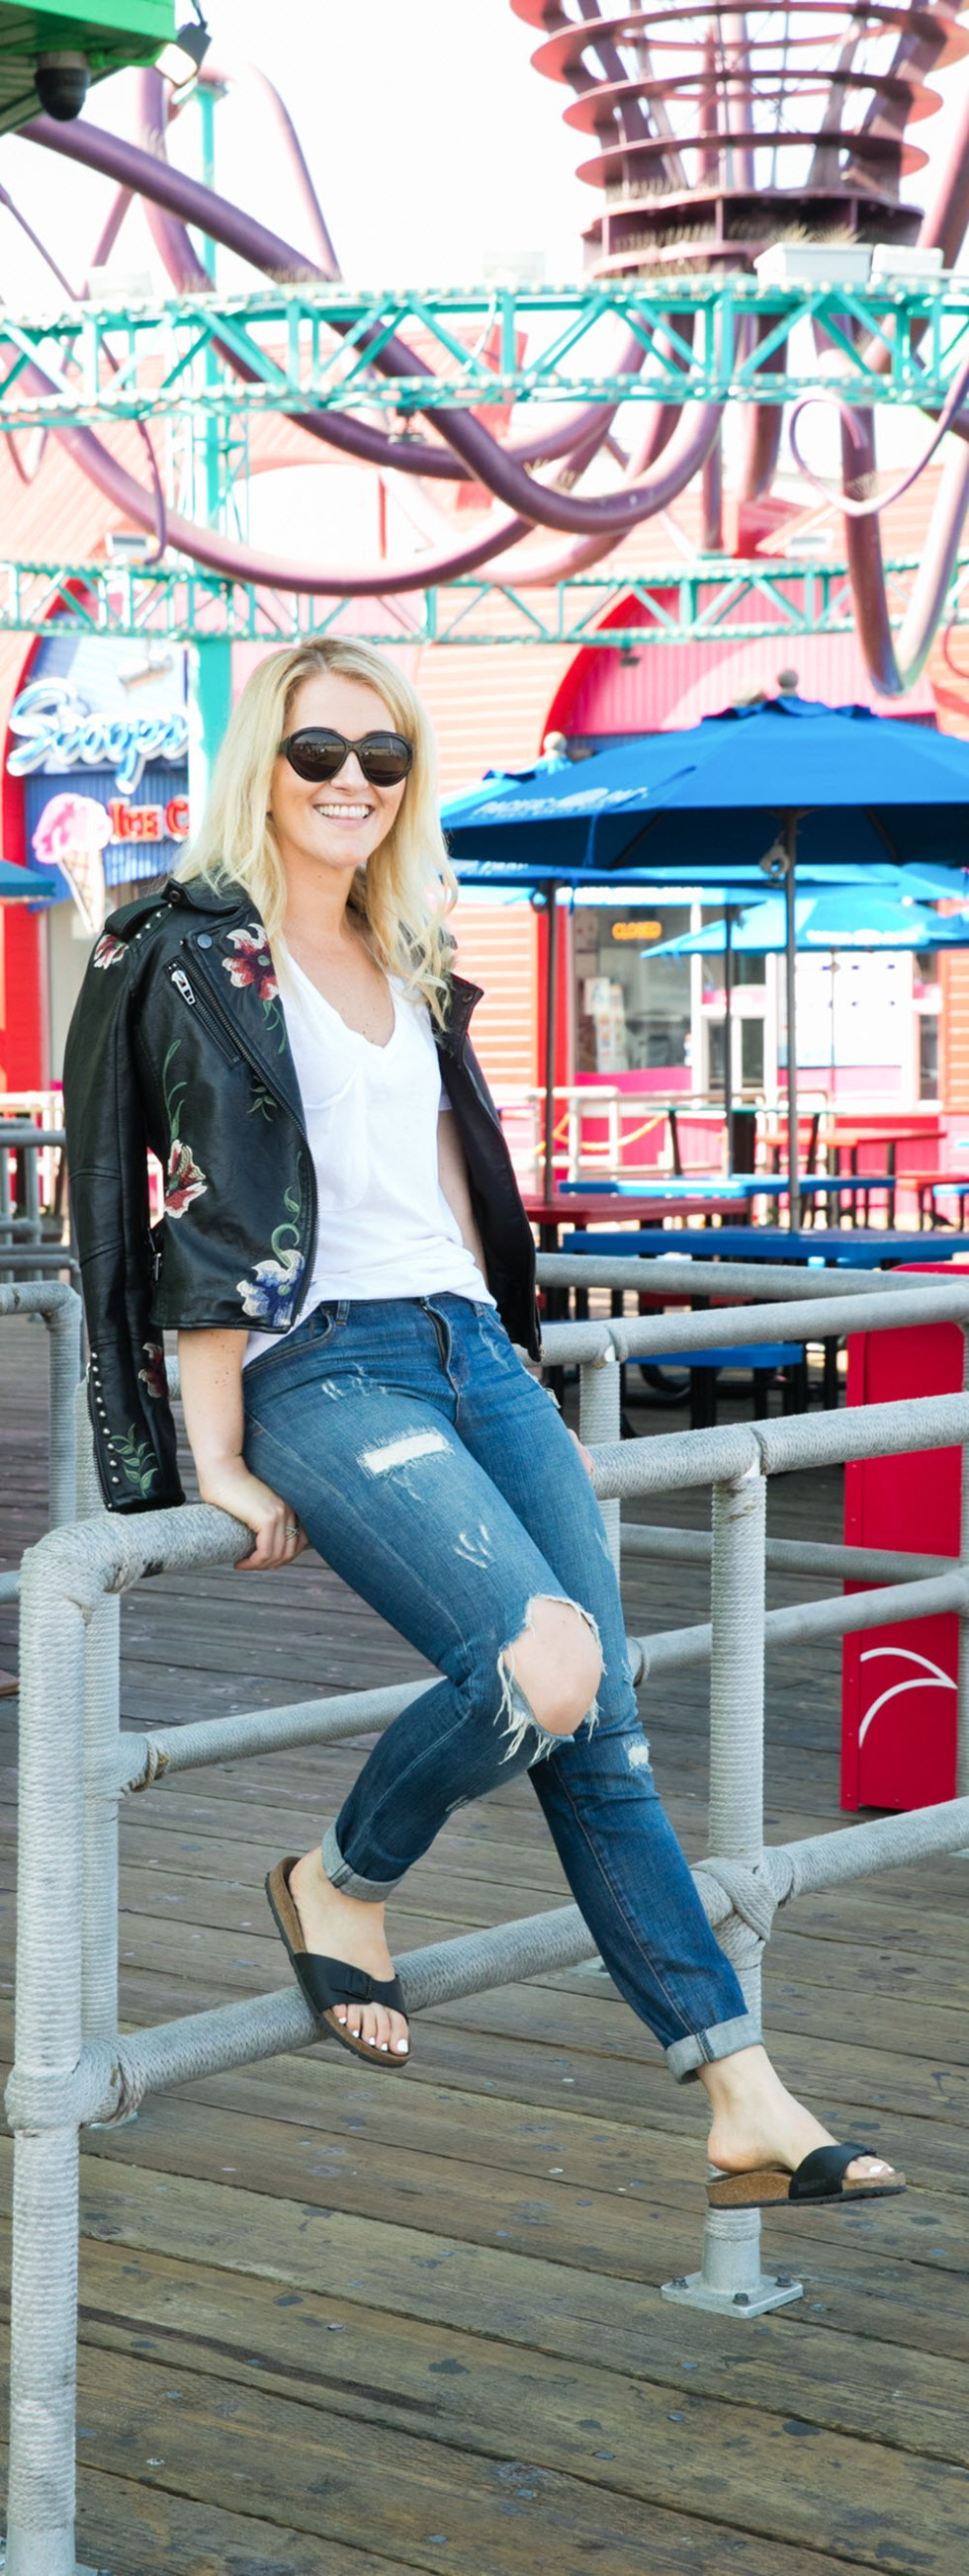 Casual Embroidered Leather Jacket + Distressed Jeans Outfit for Fall